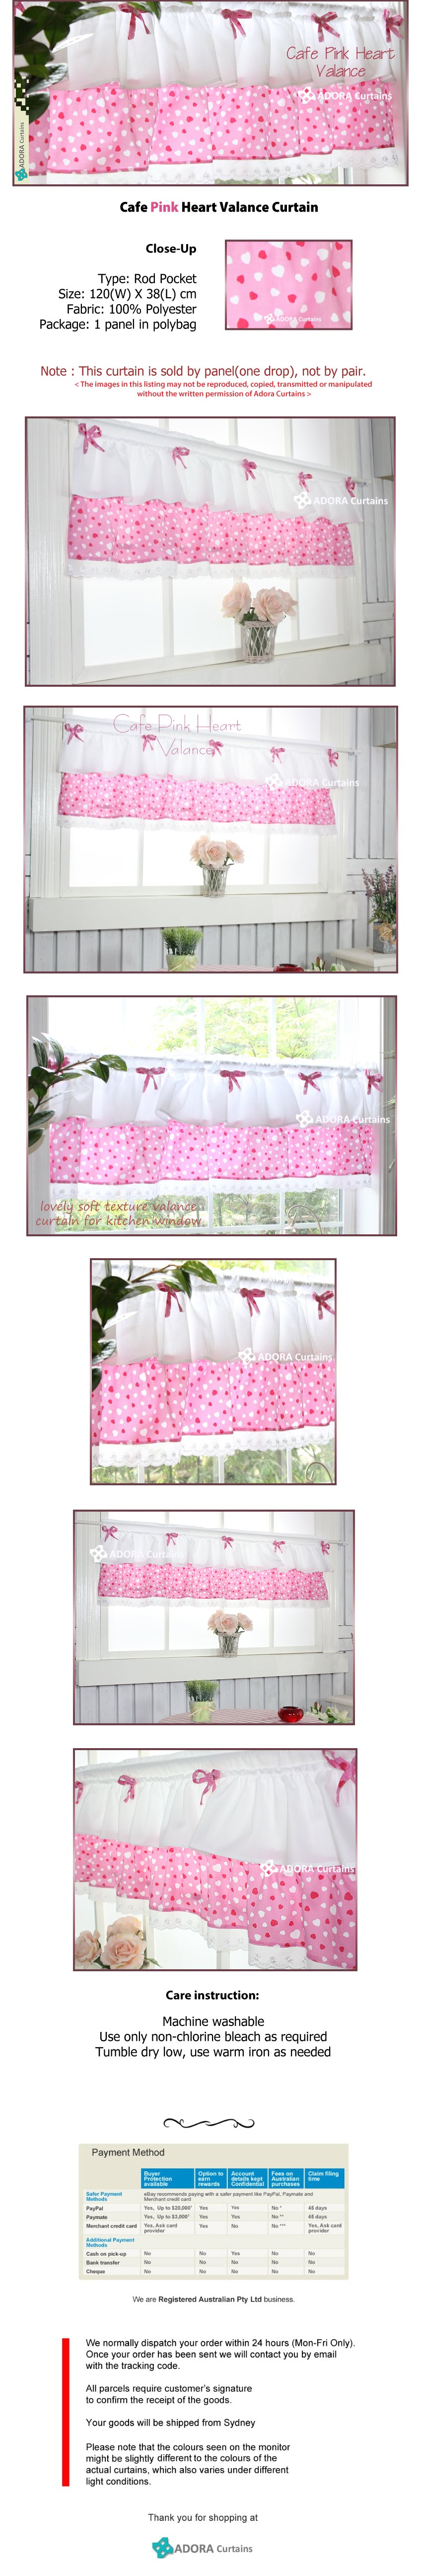 Cafe Pink Heart Valance